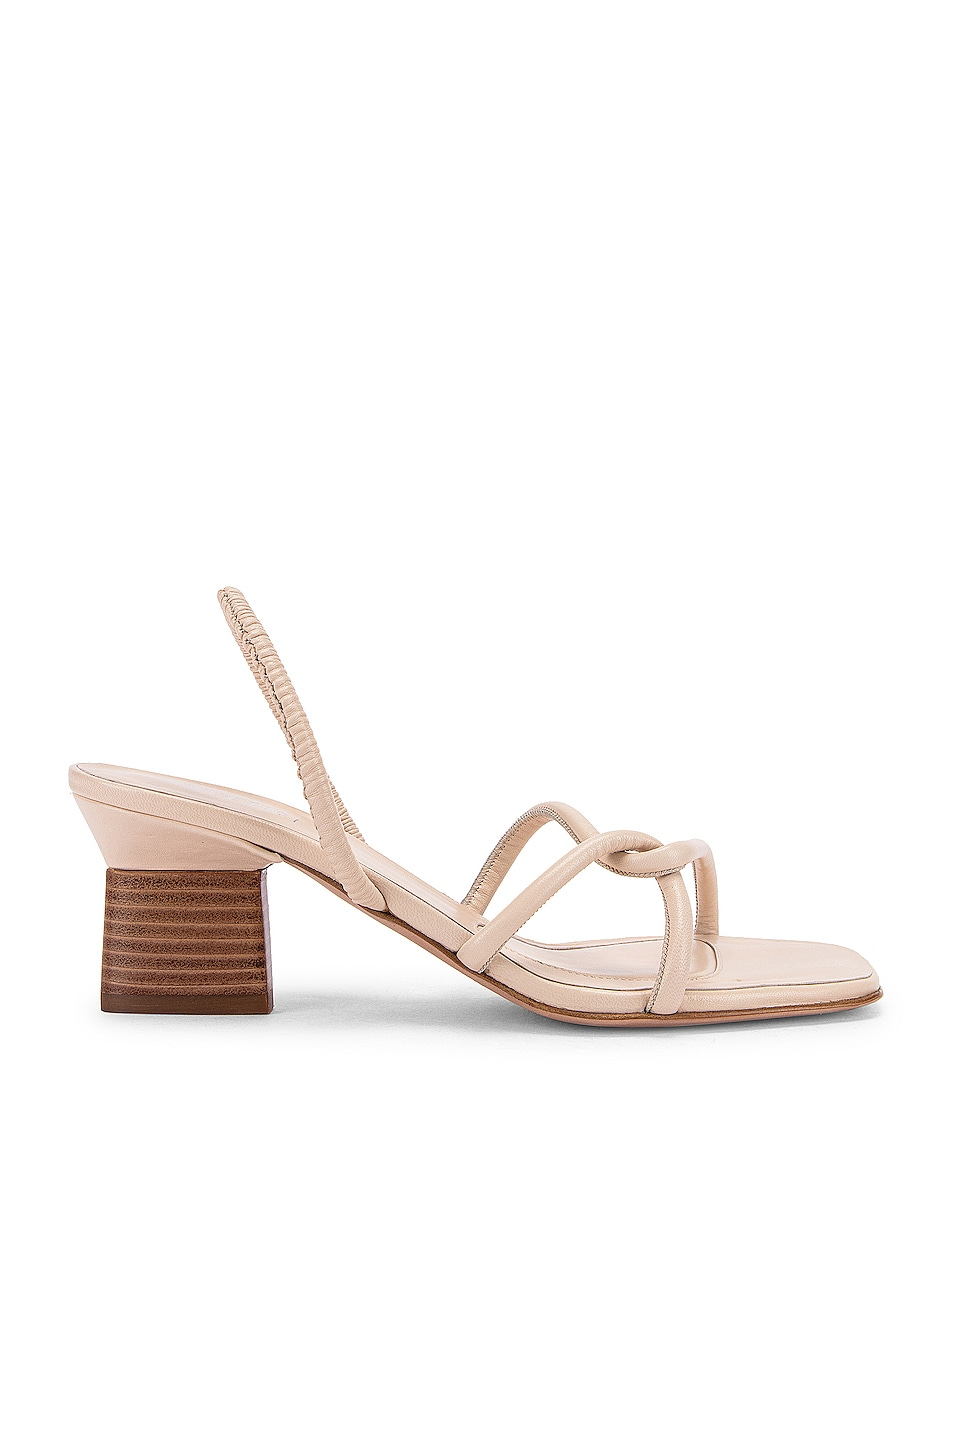 Image 1 of Rosetta Getty Strappy Heeled Slingback Sandals in Parchment